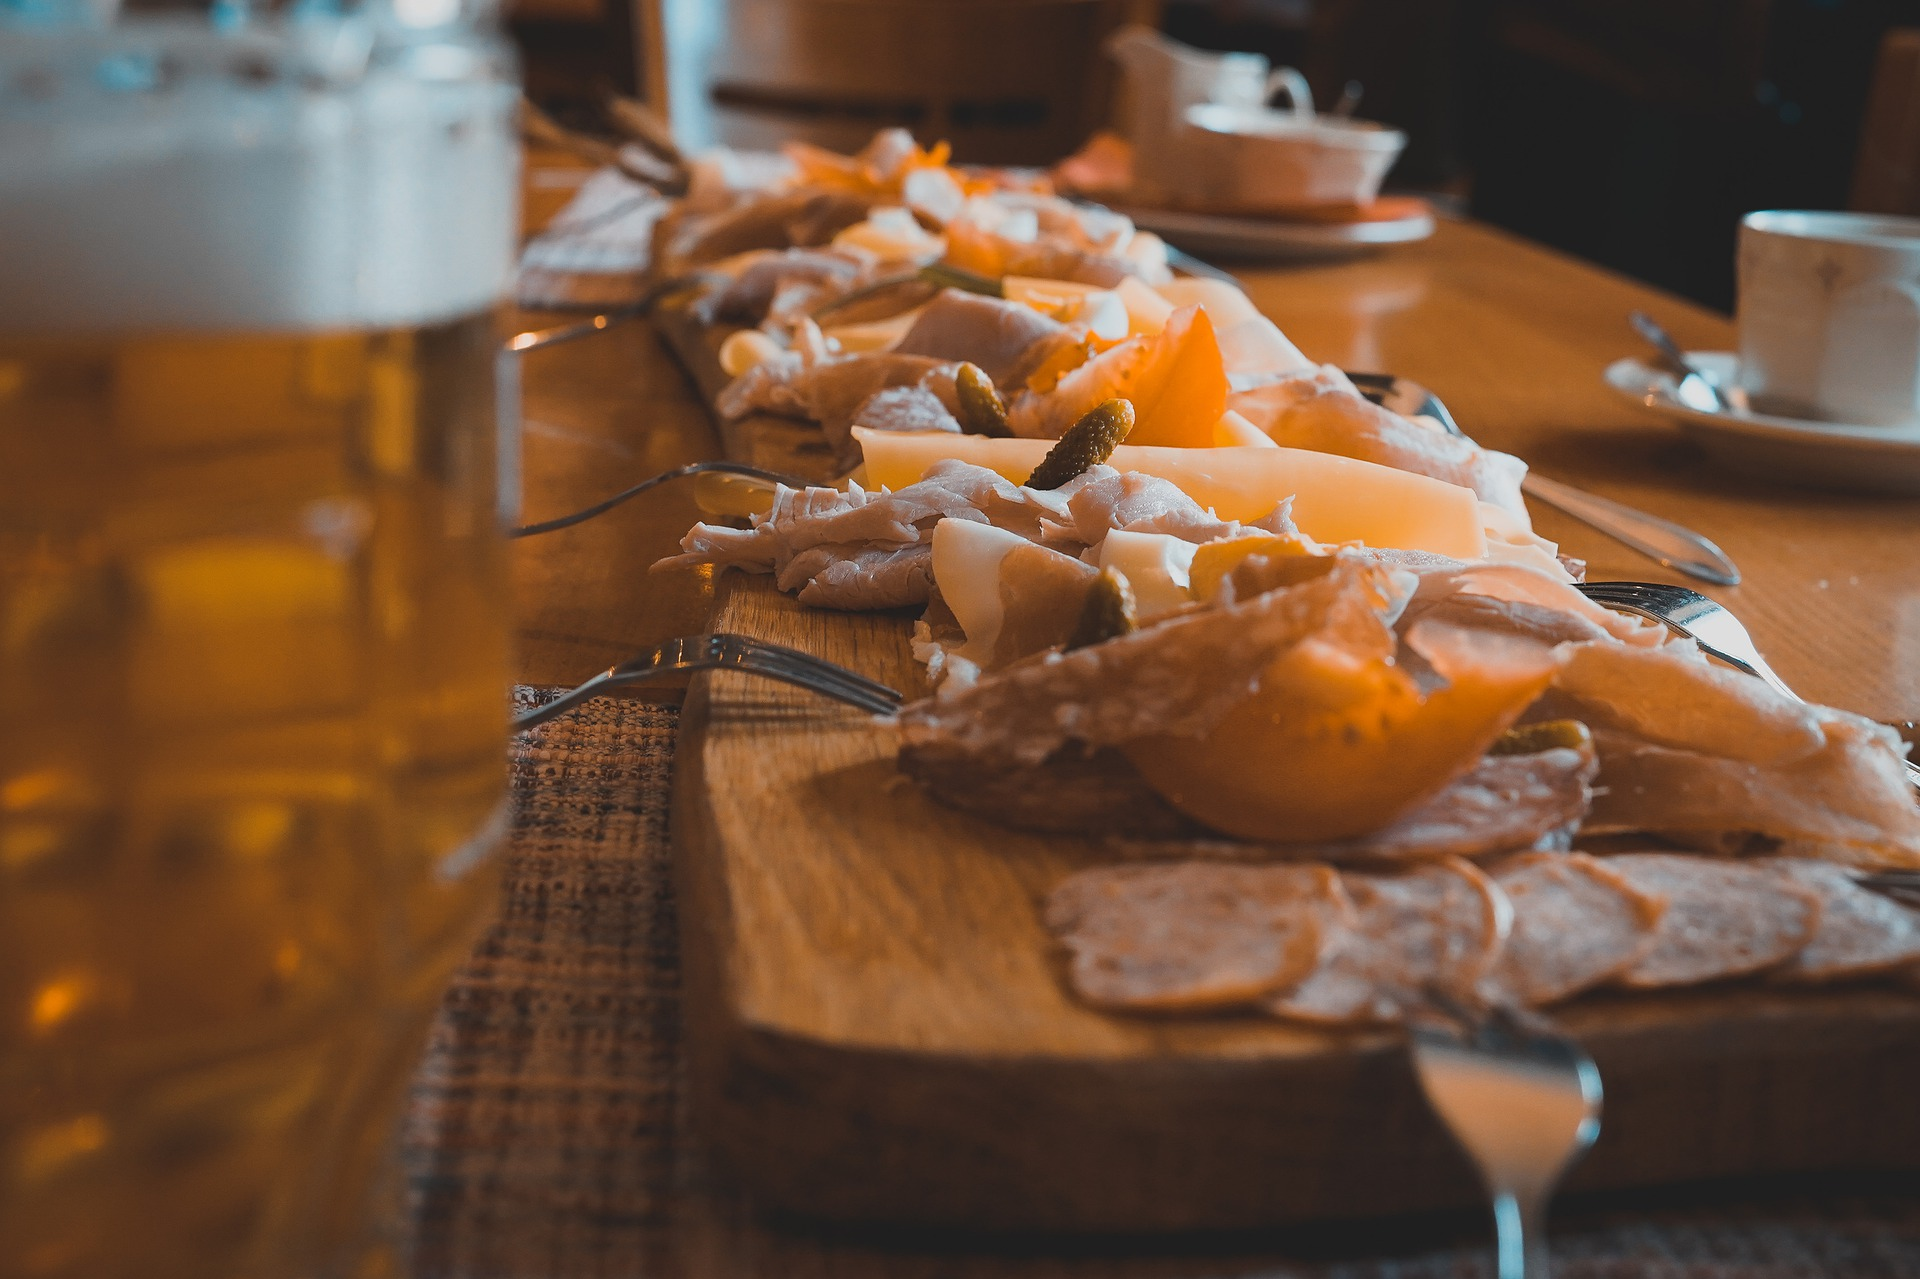 Aperitif and Tasting of beers and cold meats during a guided tour with Brussels By Foot